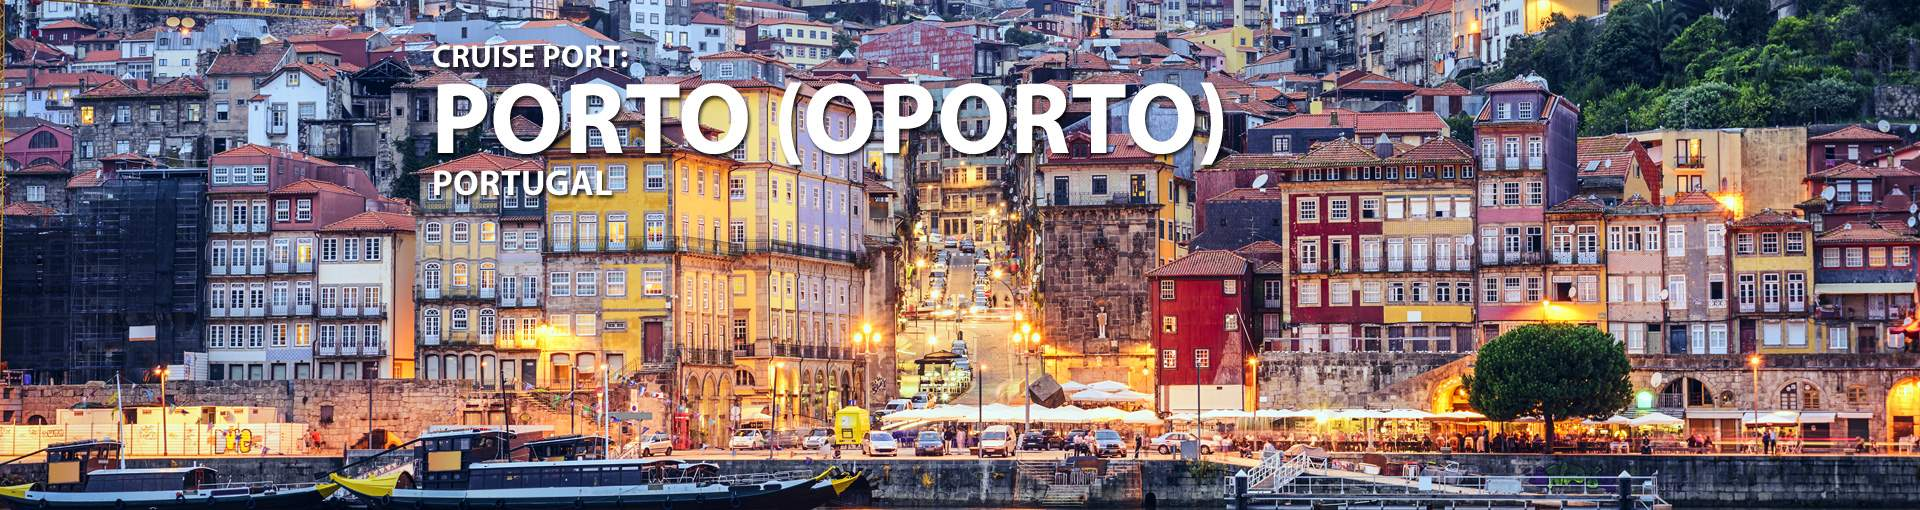 Cruises to Porto (Oporto), Portugal